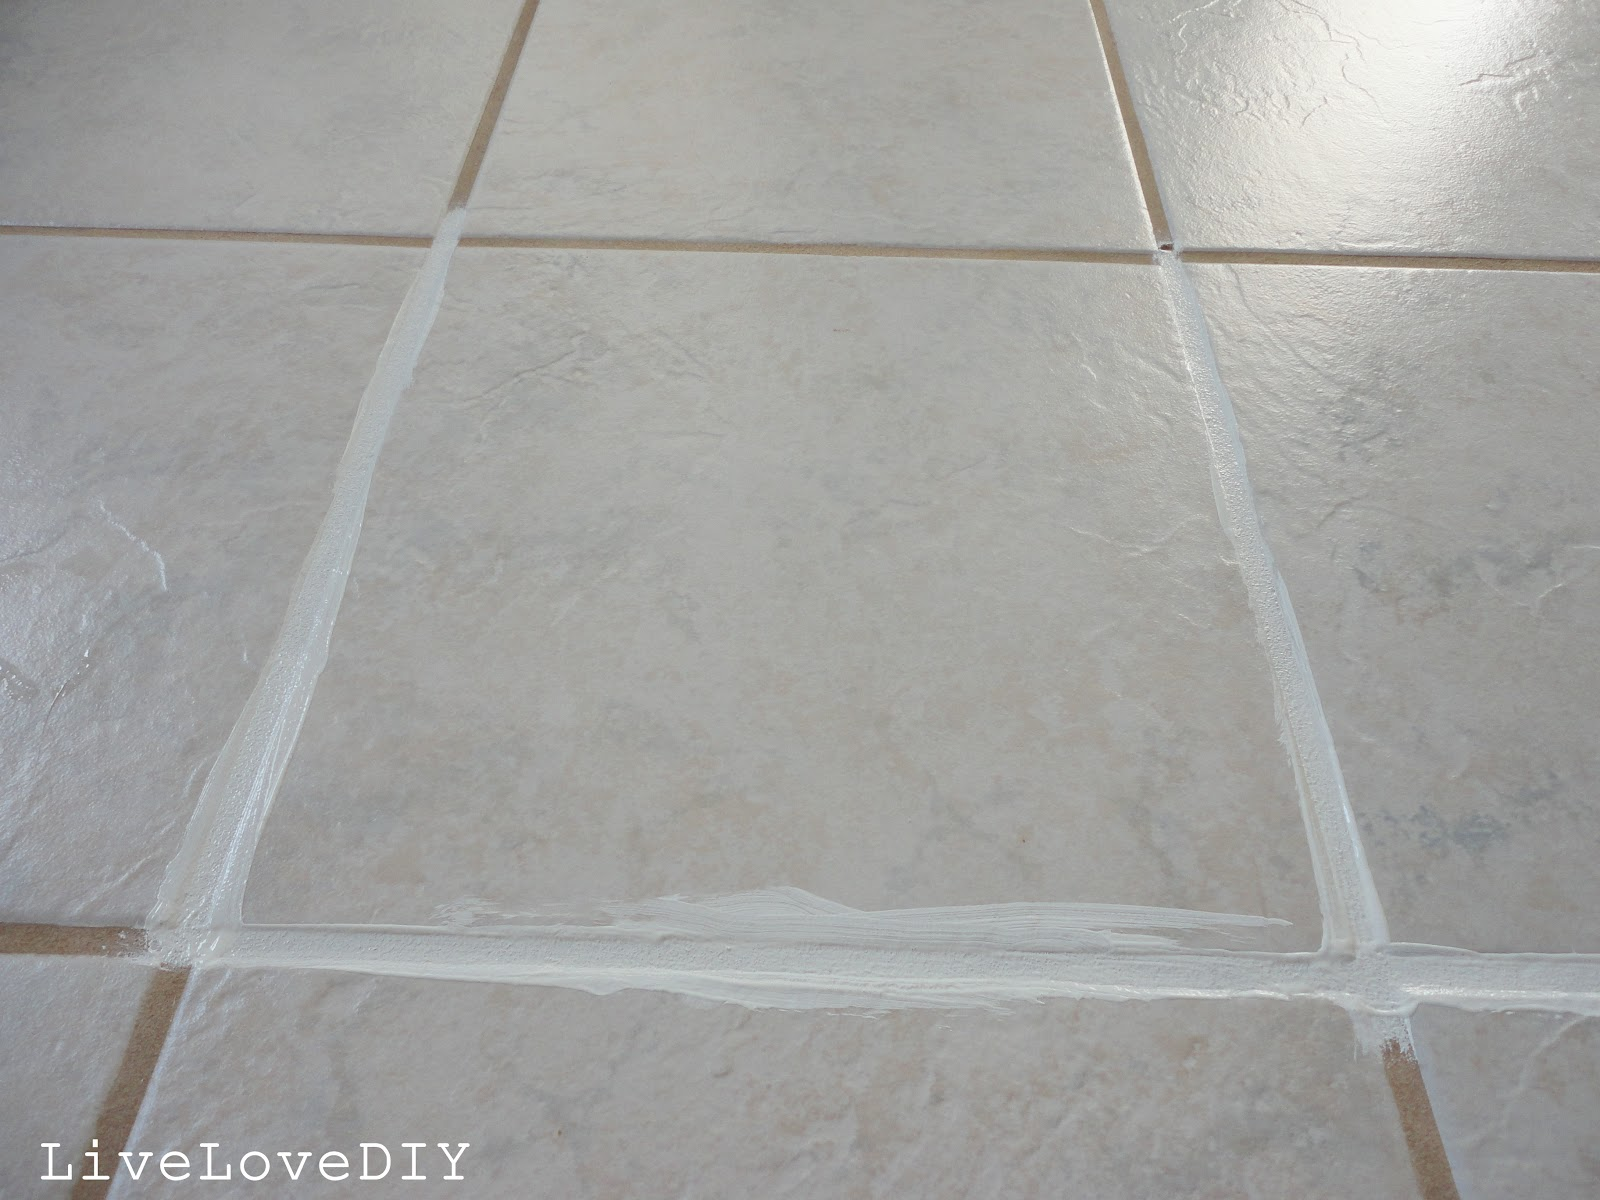 LiveLoveDIY How To Restore Dirty Tile Grout - How do i clean the grout on my tile floor